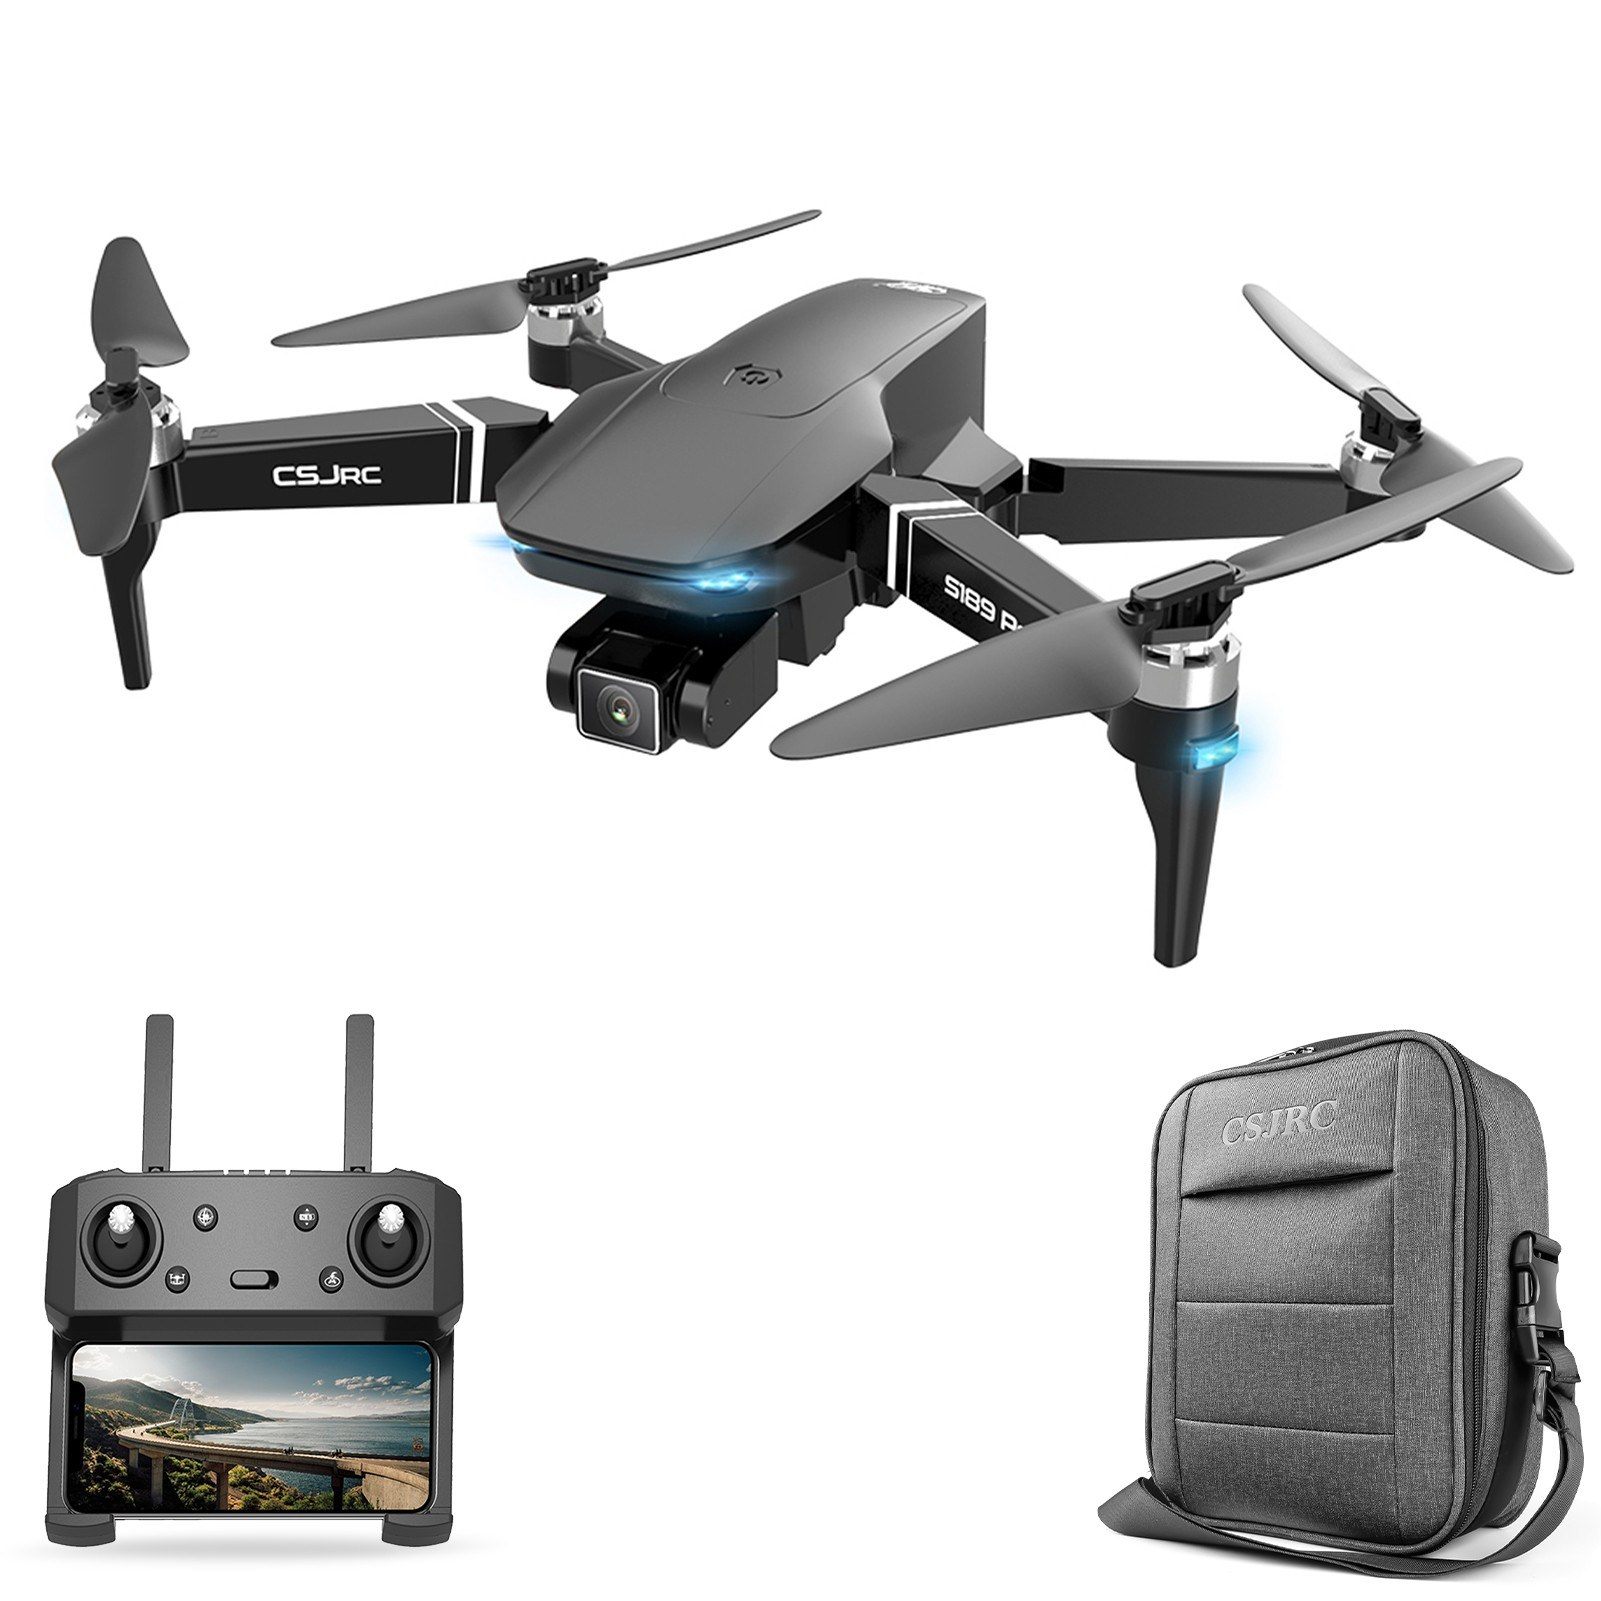 Tomtop - 53% OFF CSJ S189 PRO 5G Wifi FPV GPS 4K Camera Drone, Free Shipping $134.99